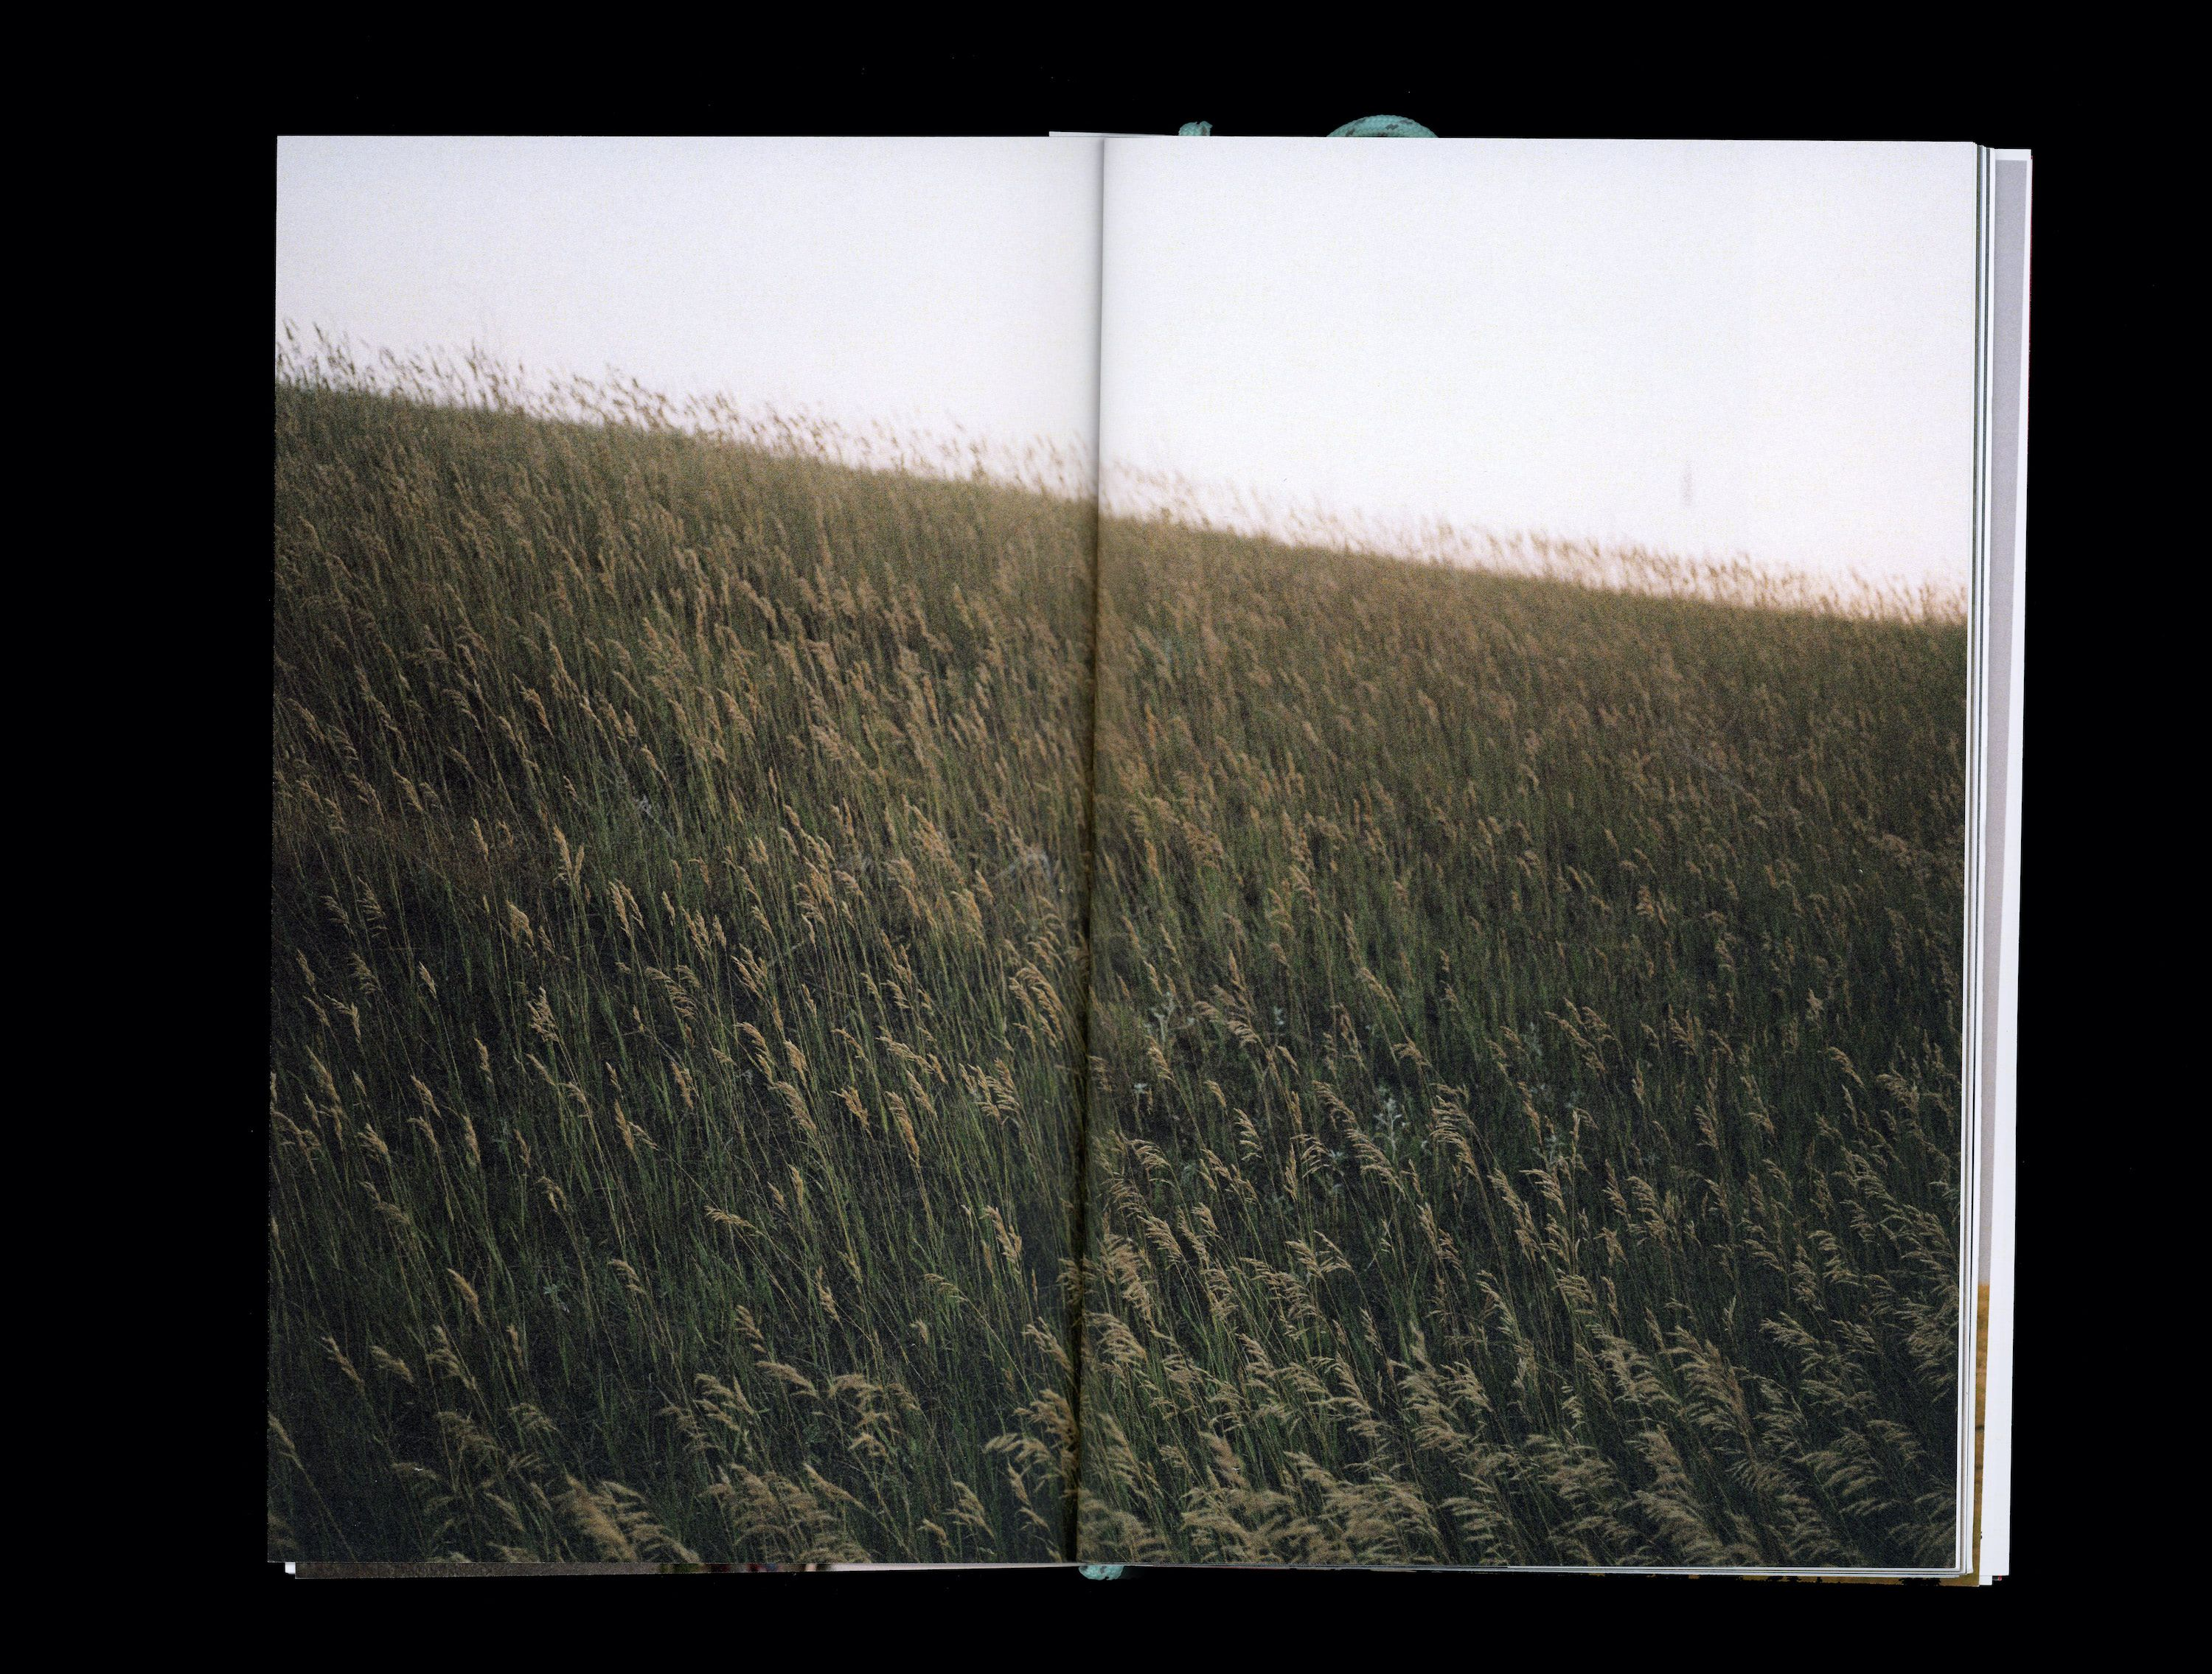 Photograph in book of grass plane